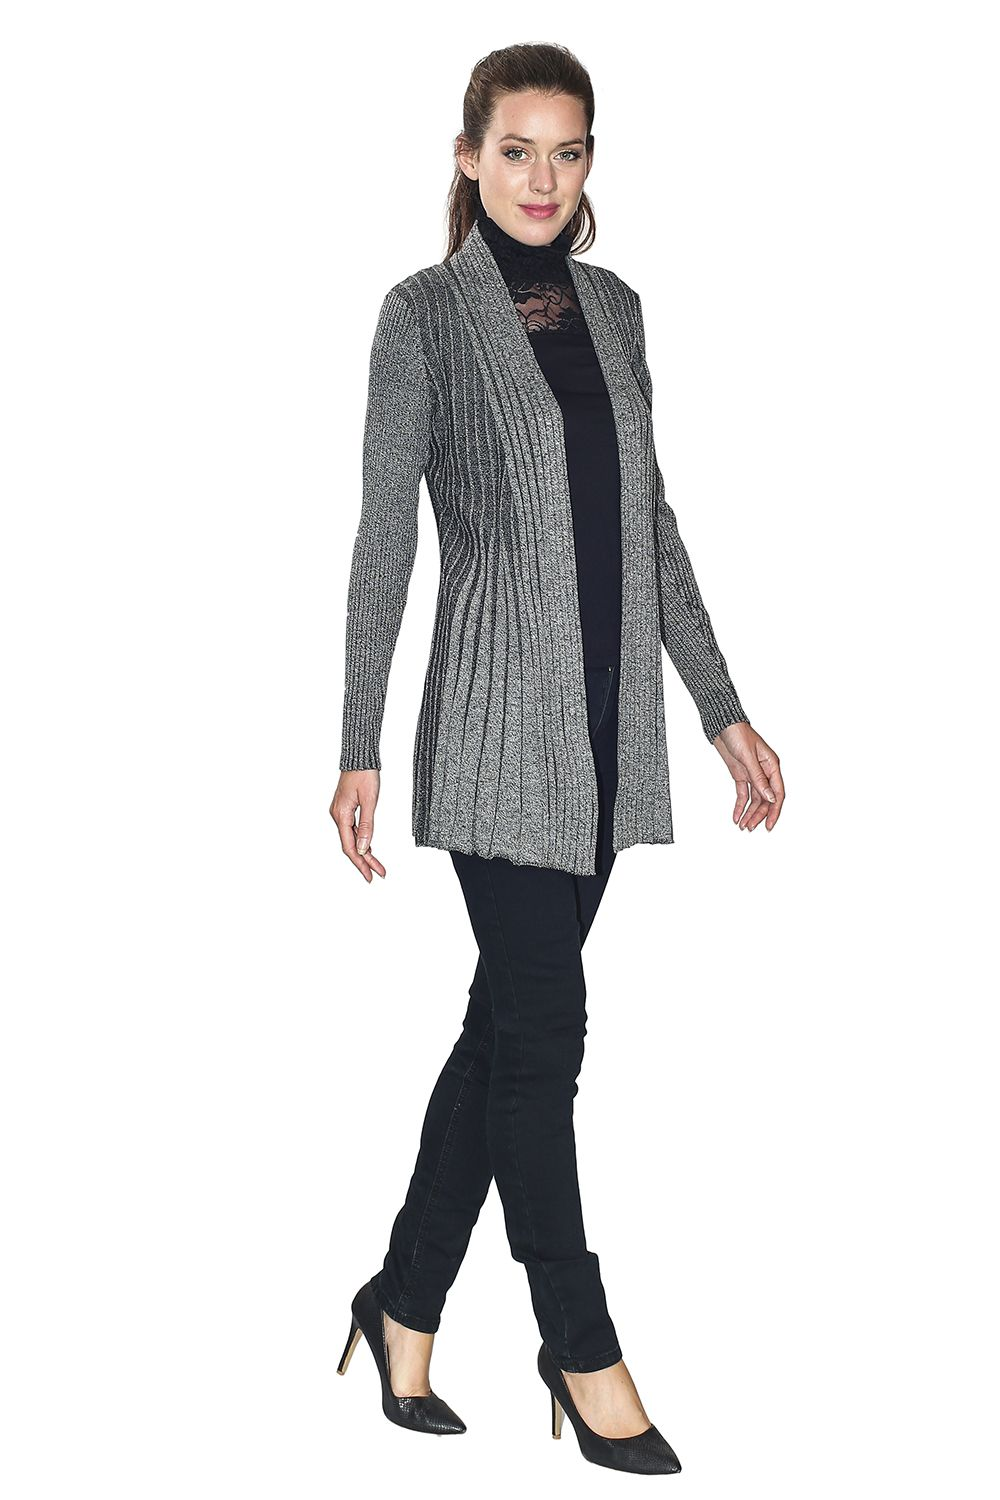 Assuili Long Sleeve Textured Knit Open Cardigan (Slim Fit) in Grey